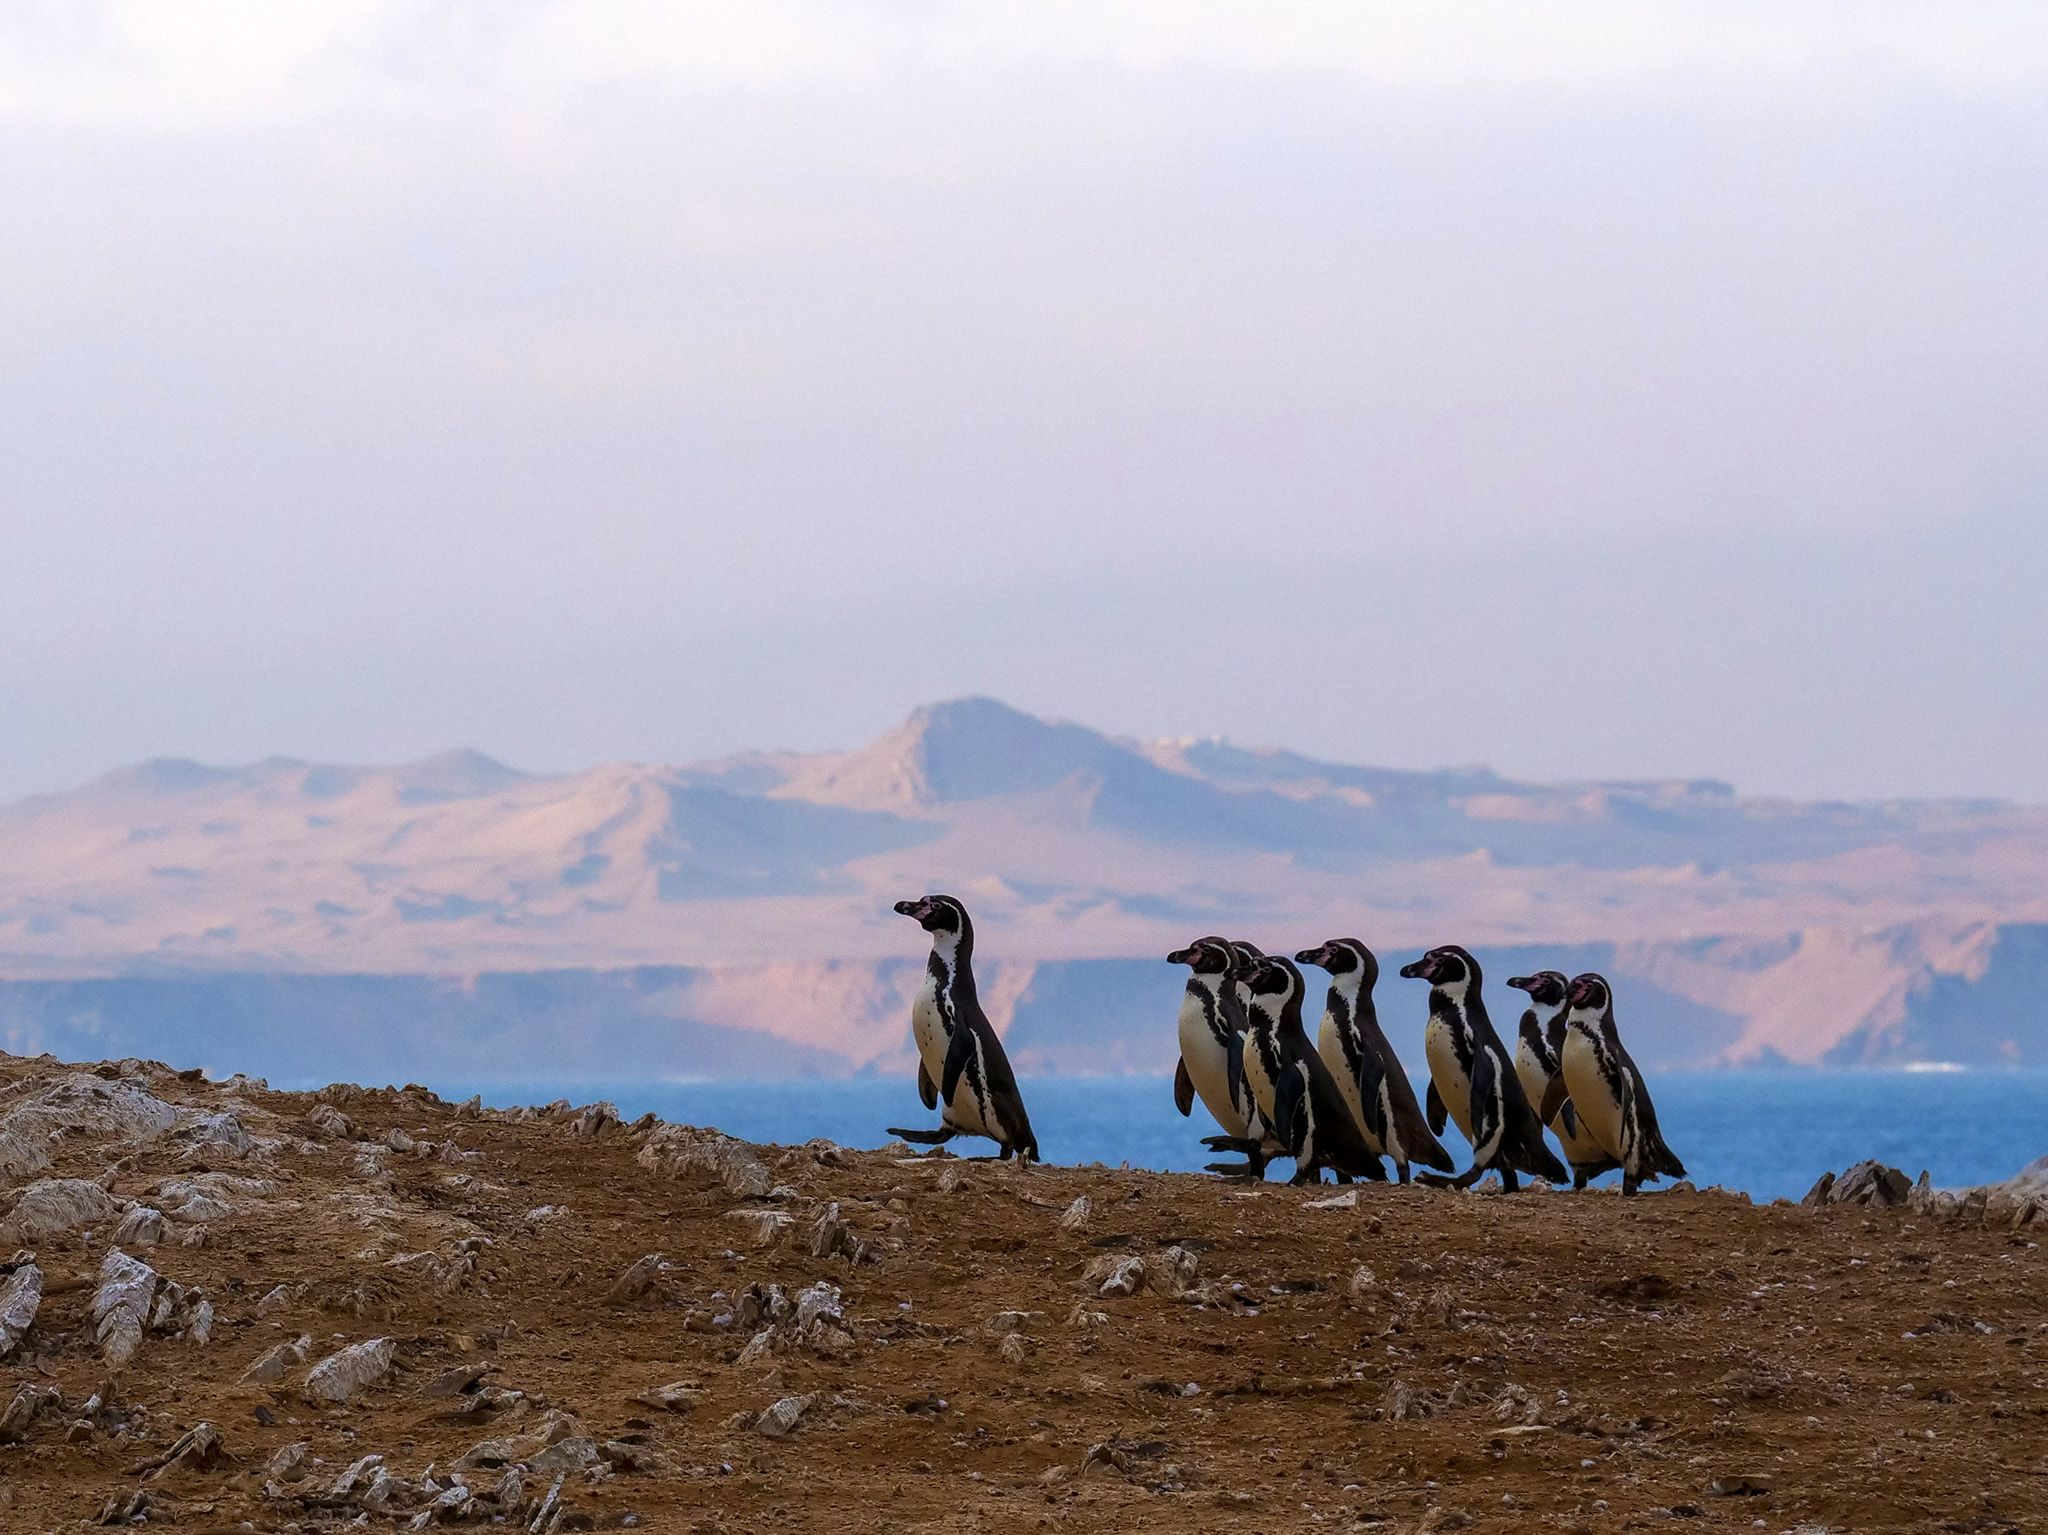 Punta San Juan, Peru:  Group of Humboldt penguins following leader across rocks. This image is... [Photo of the day - December 2018]